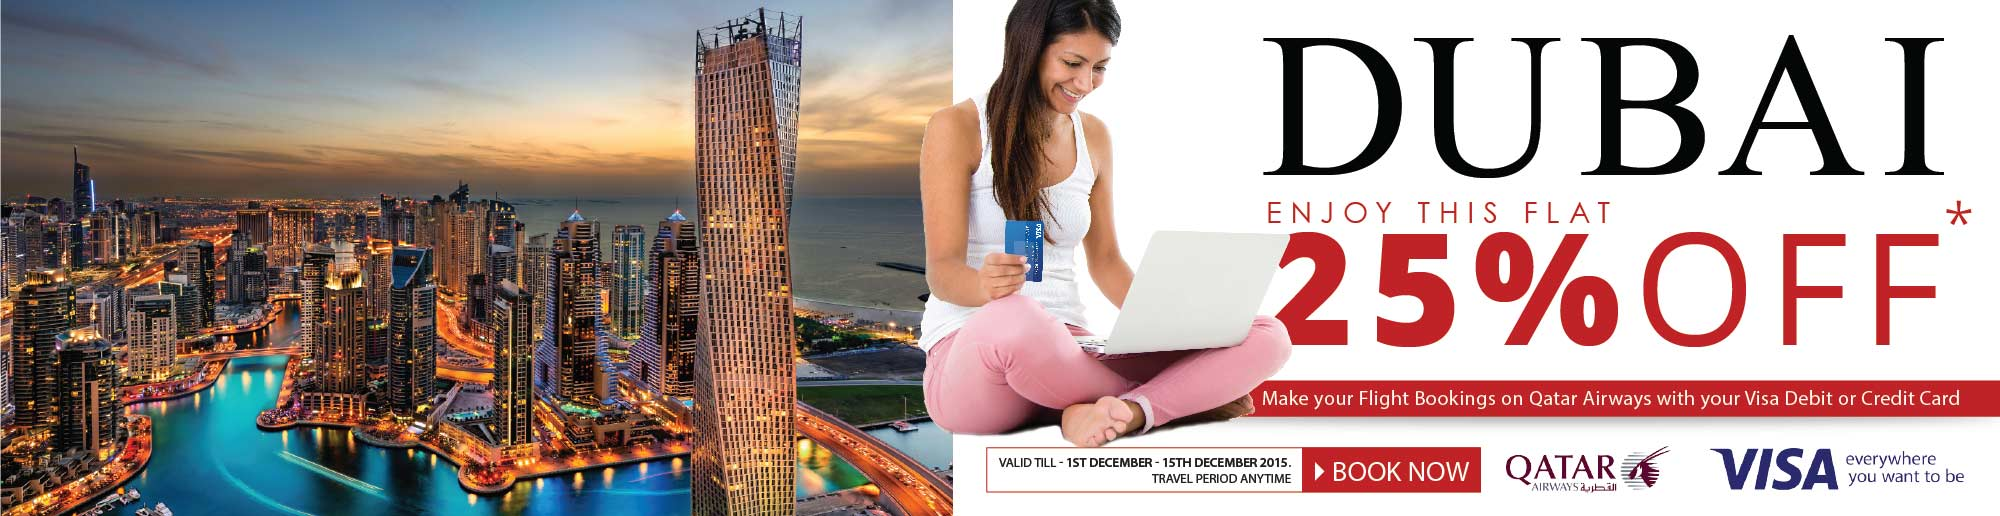 Book-your-Qatar-Airways-Flights-to-Dubai--with-Visa-Debit-Credit-Card-and-get-a-flat-25--OFF-FMF1449213760